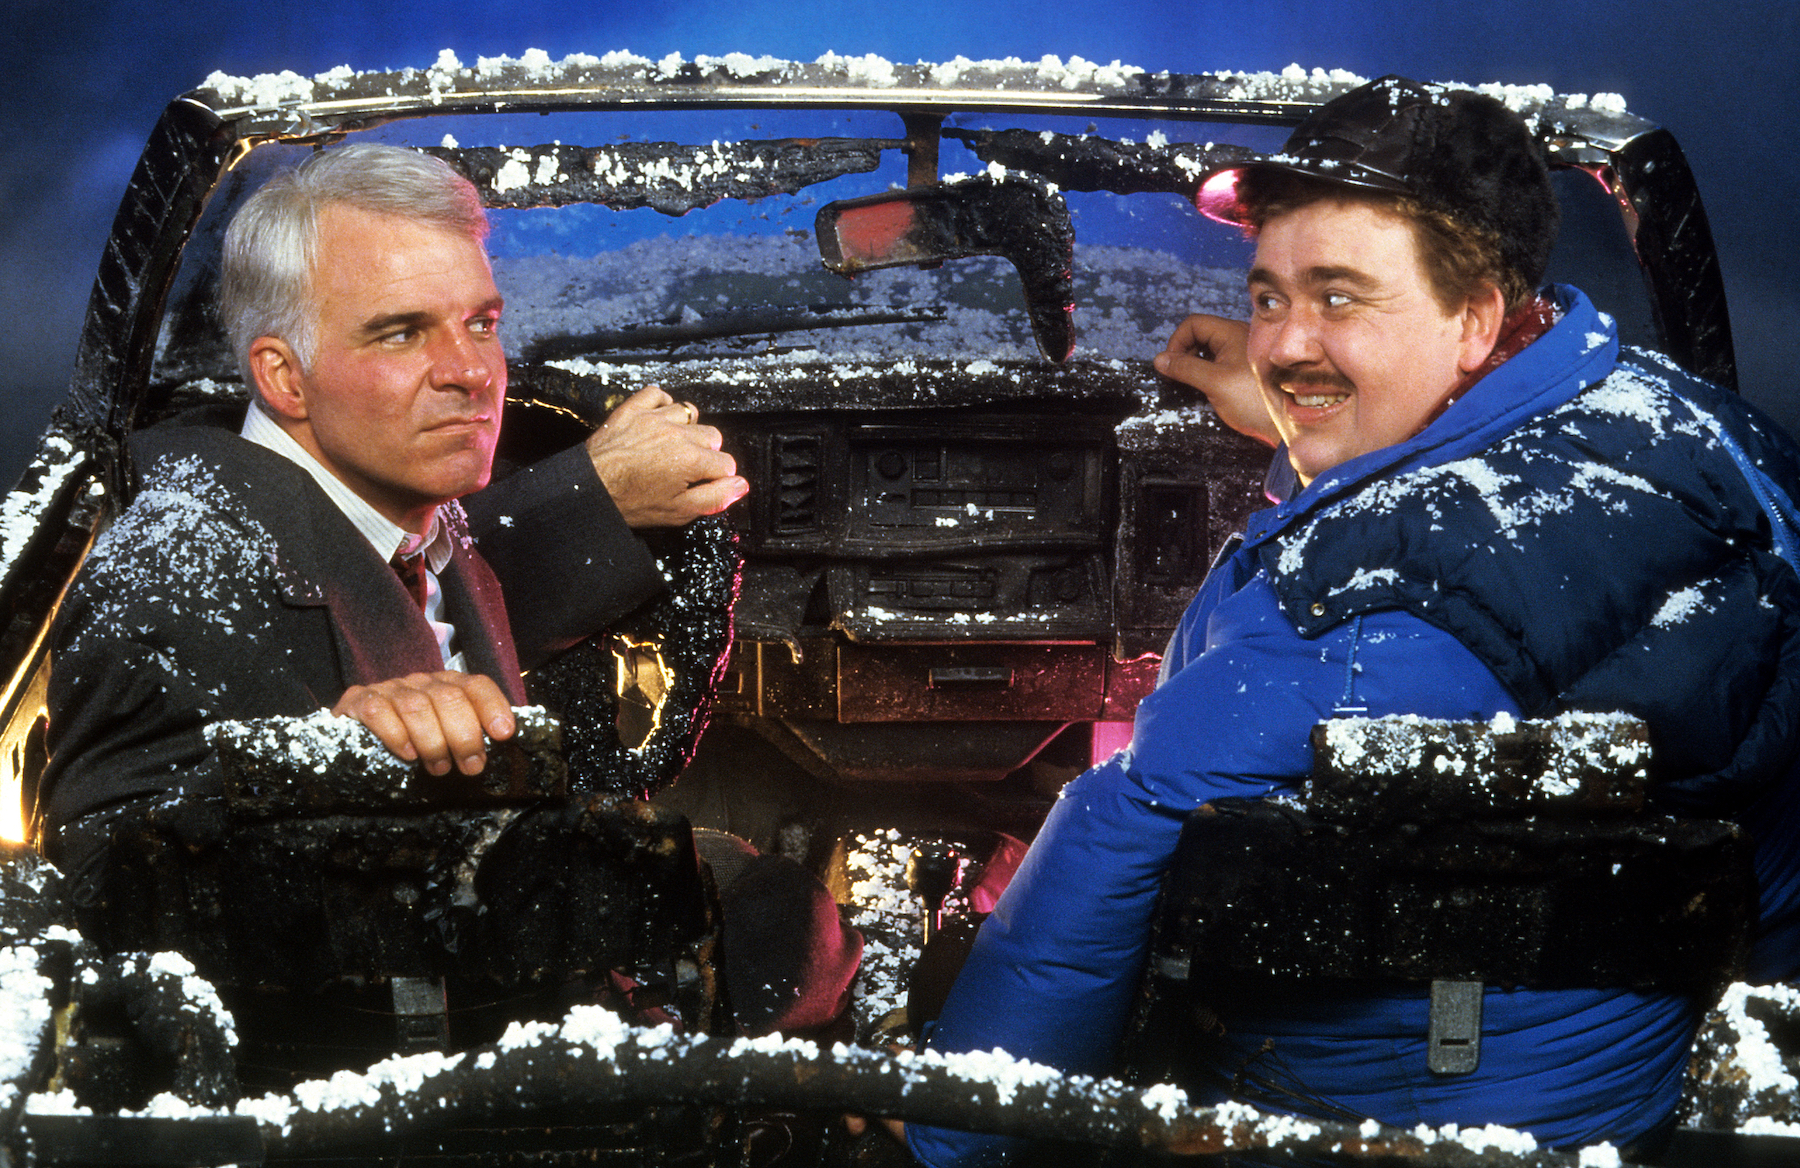 Ryan Reynolds Posts Video Tribute to John Candy on 25th Anniversary of His Death - Steve Martin and John Candy sit in a destroyed car in a scene from the film 'Planes, Trains & Automobiles', 1987.